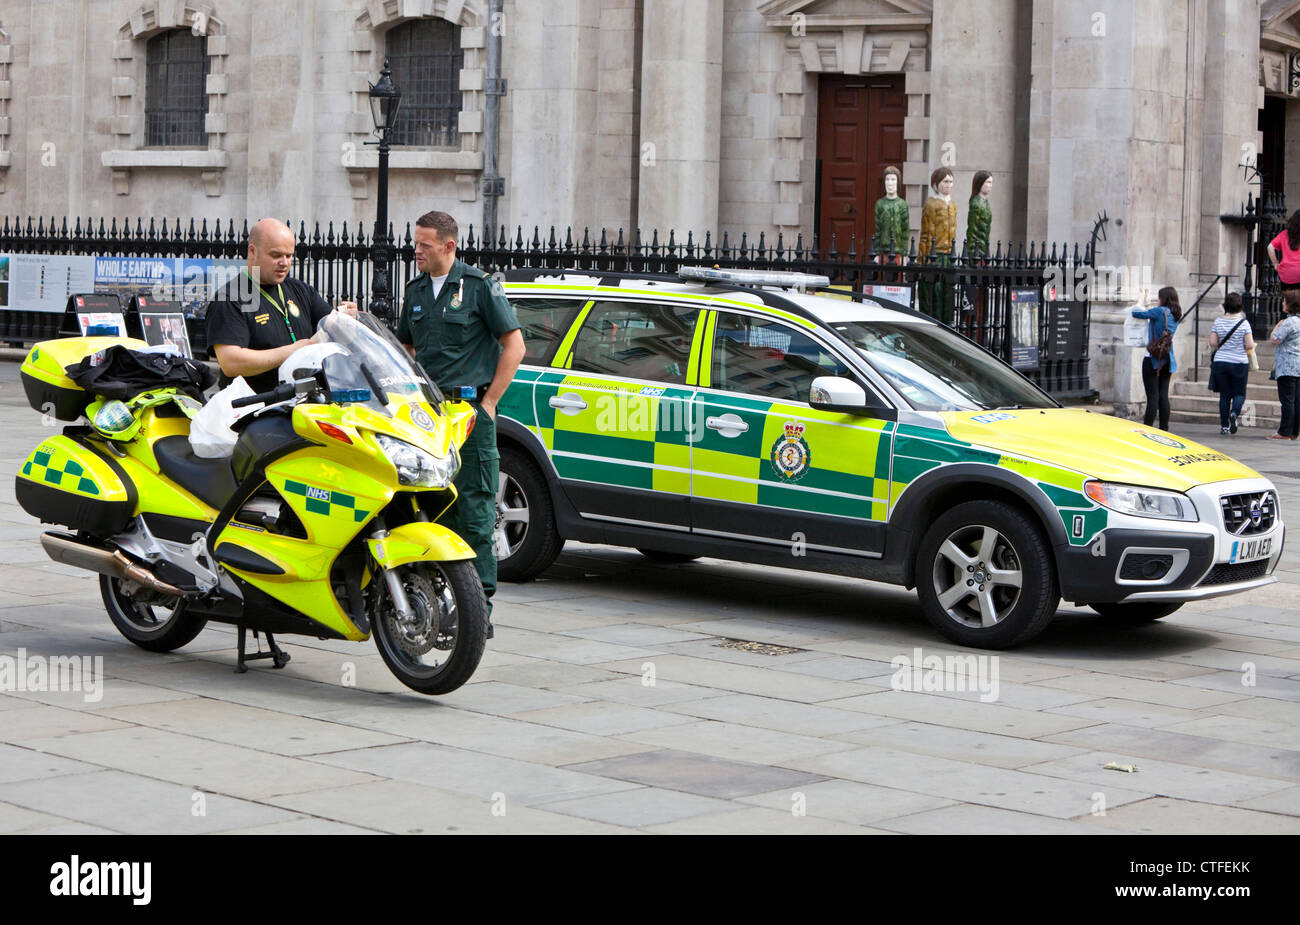 NHS ambulance and motorcycle parked outside St Martin's in the Fields Church, London, England, UK - Stock Image